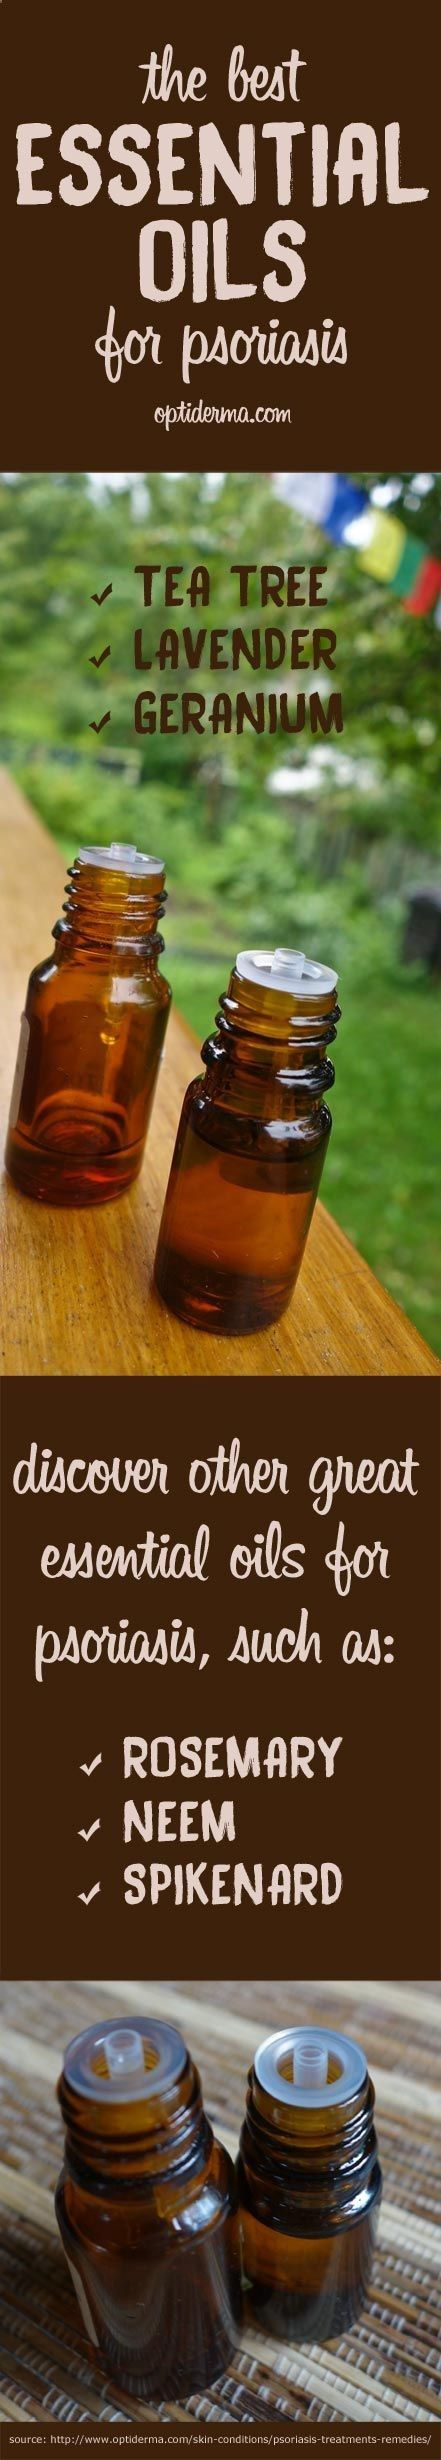 Remedies for Psoriasis - Psoriasis Revolution - Essential oils for psoriasis scalp psoriasis REAL PEOPLE. REAL RESULTS 160,000  Psoriasis Free Customers REAL PEOPLE. REAL RESULTS 160,000+ Psoriasis Free Customers